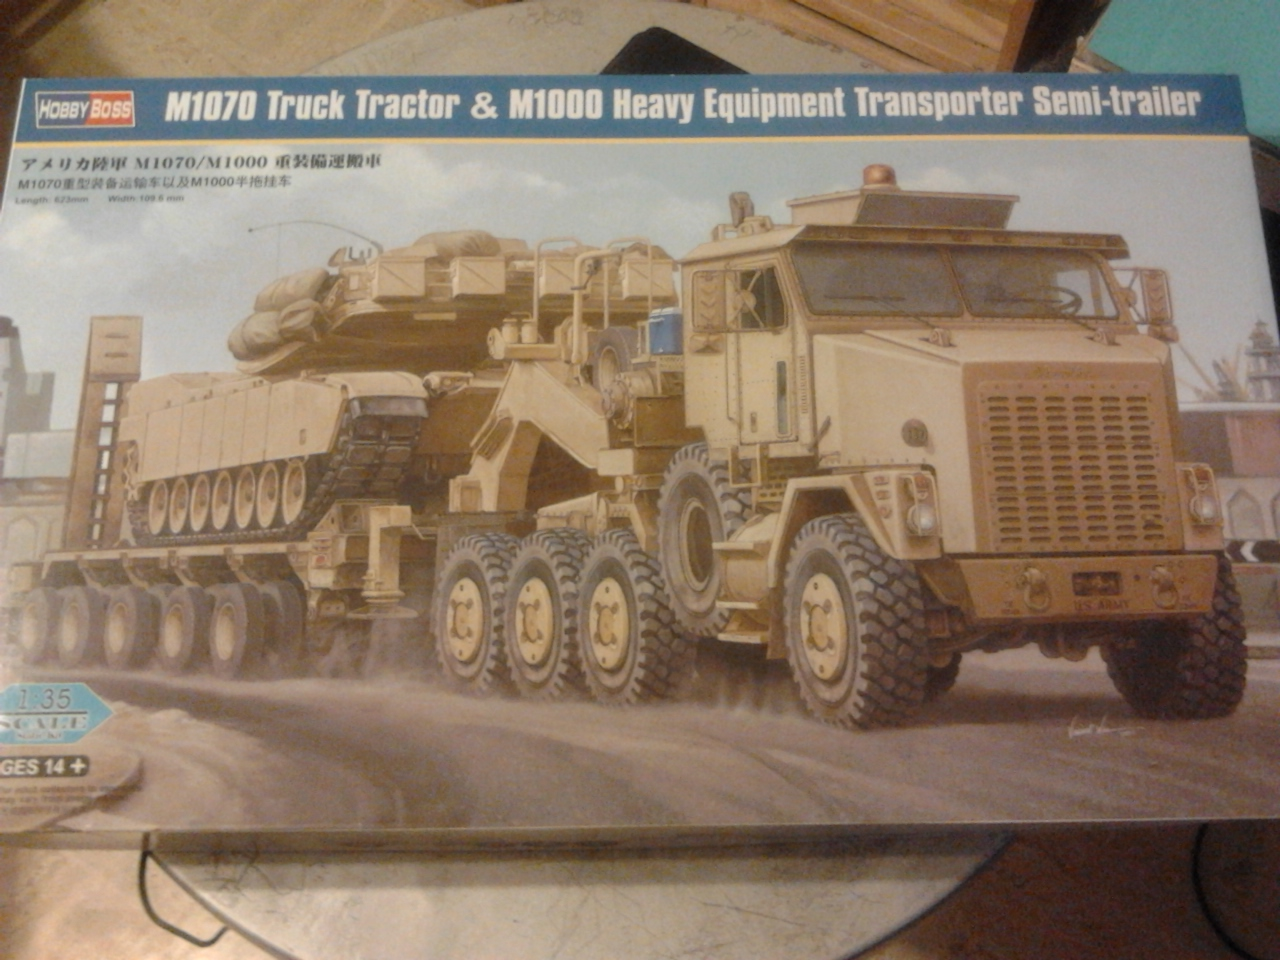 M1070 Truck Tractor & M1000 Semi-Trailer By T-bird!!!!! 1/35 Hobby Boss.Up du01/02.... 20120809211811